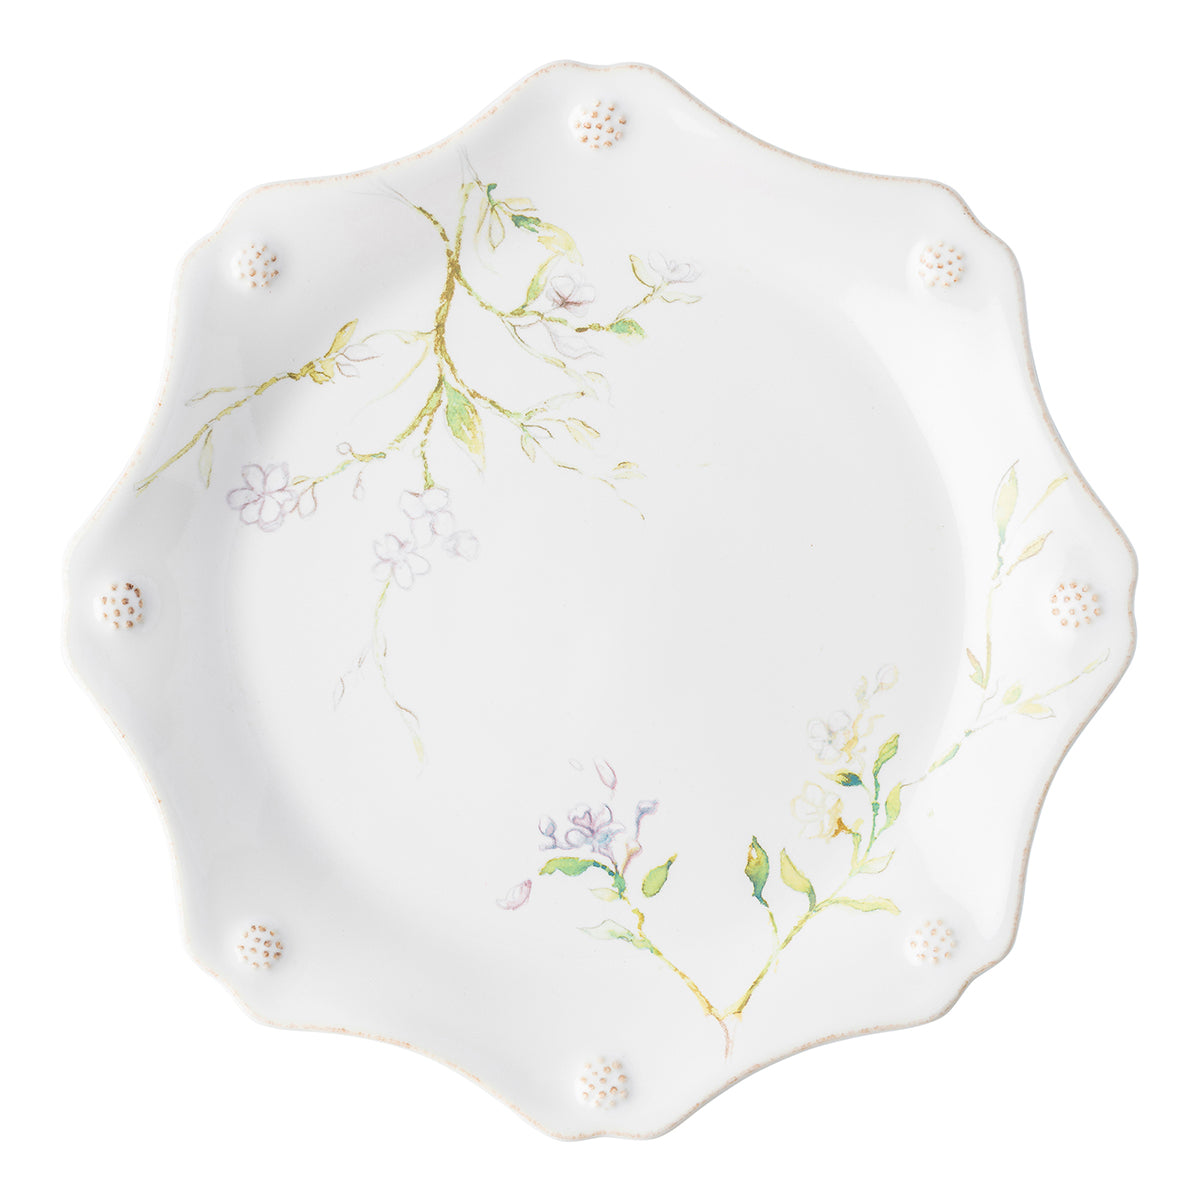 Berry & Thread Floral Sketch Jasmine Dessert/Salad Plate